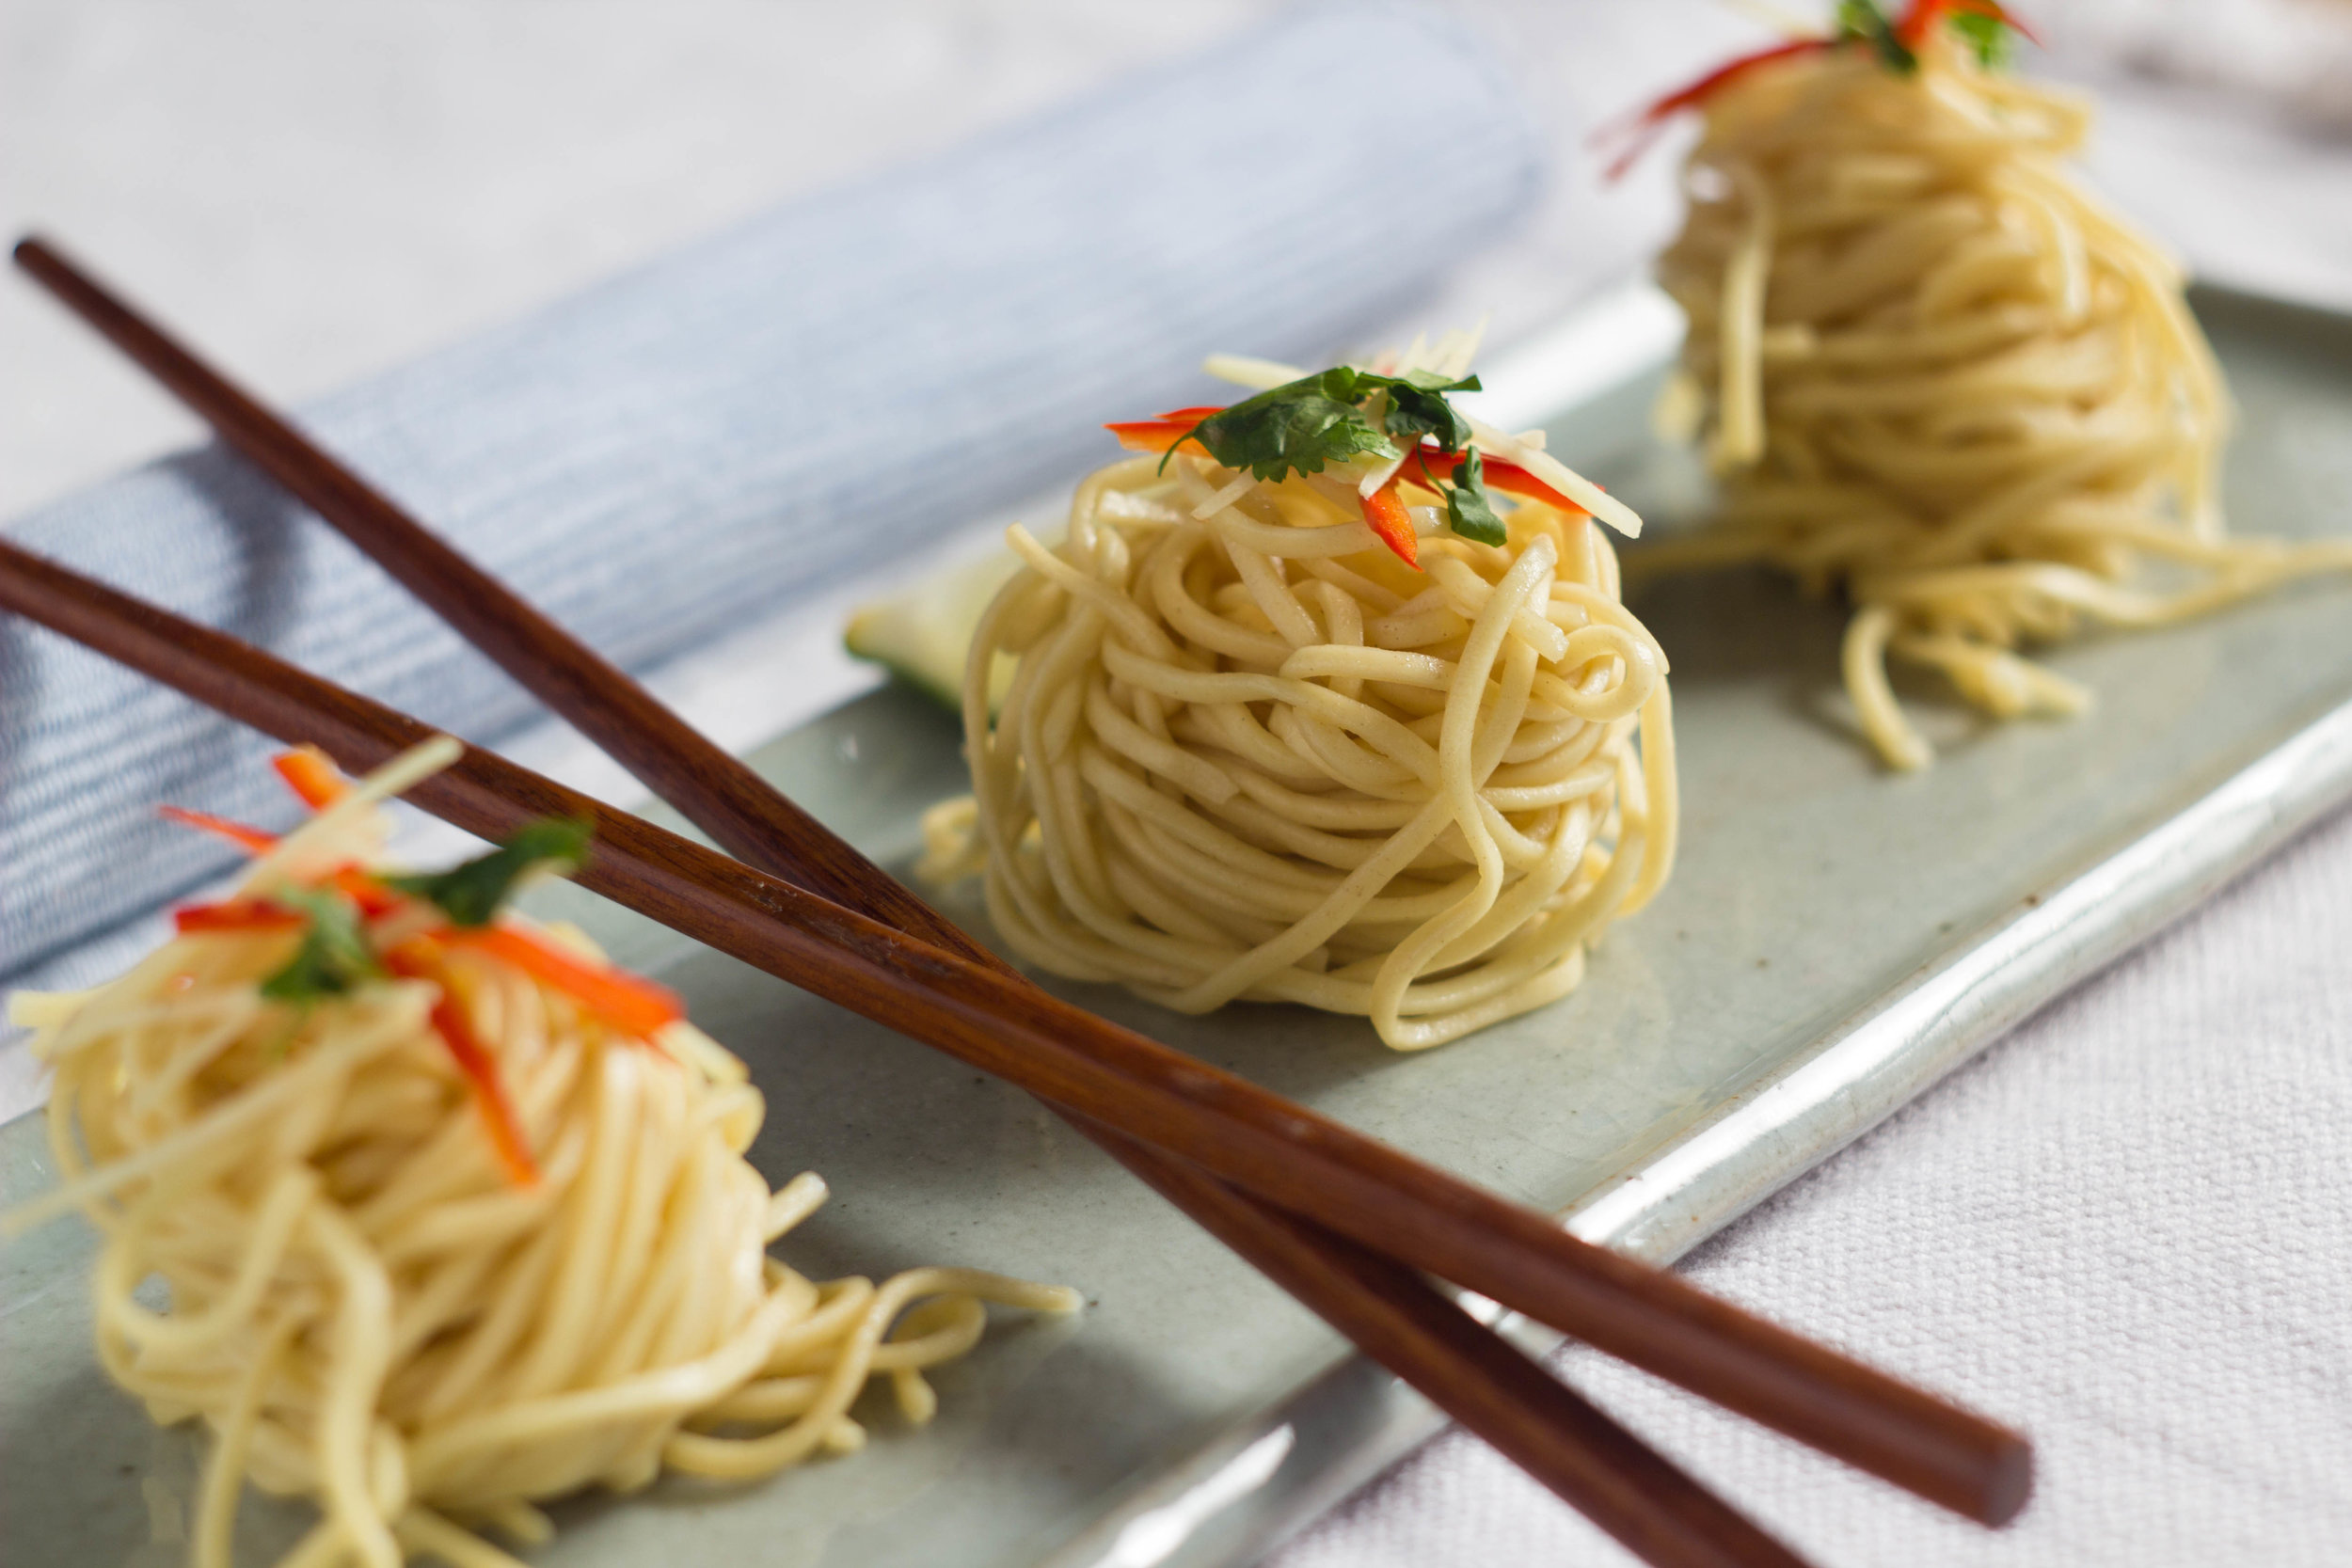 Noodles Chef's Style